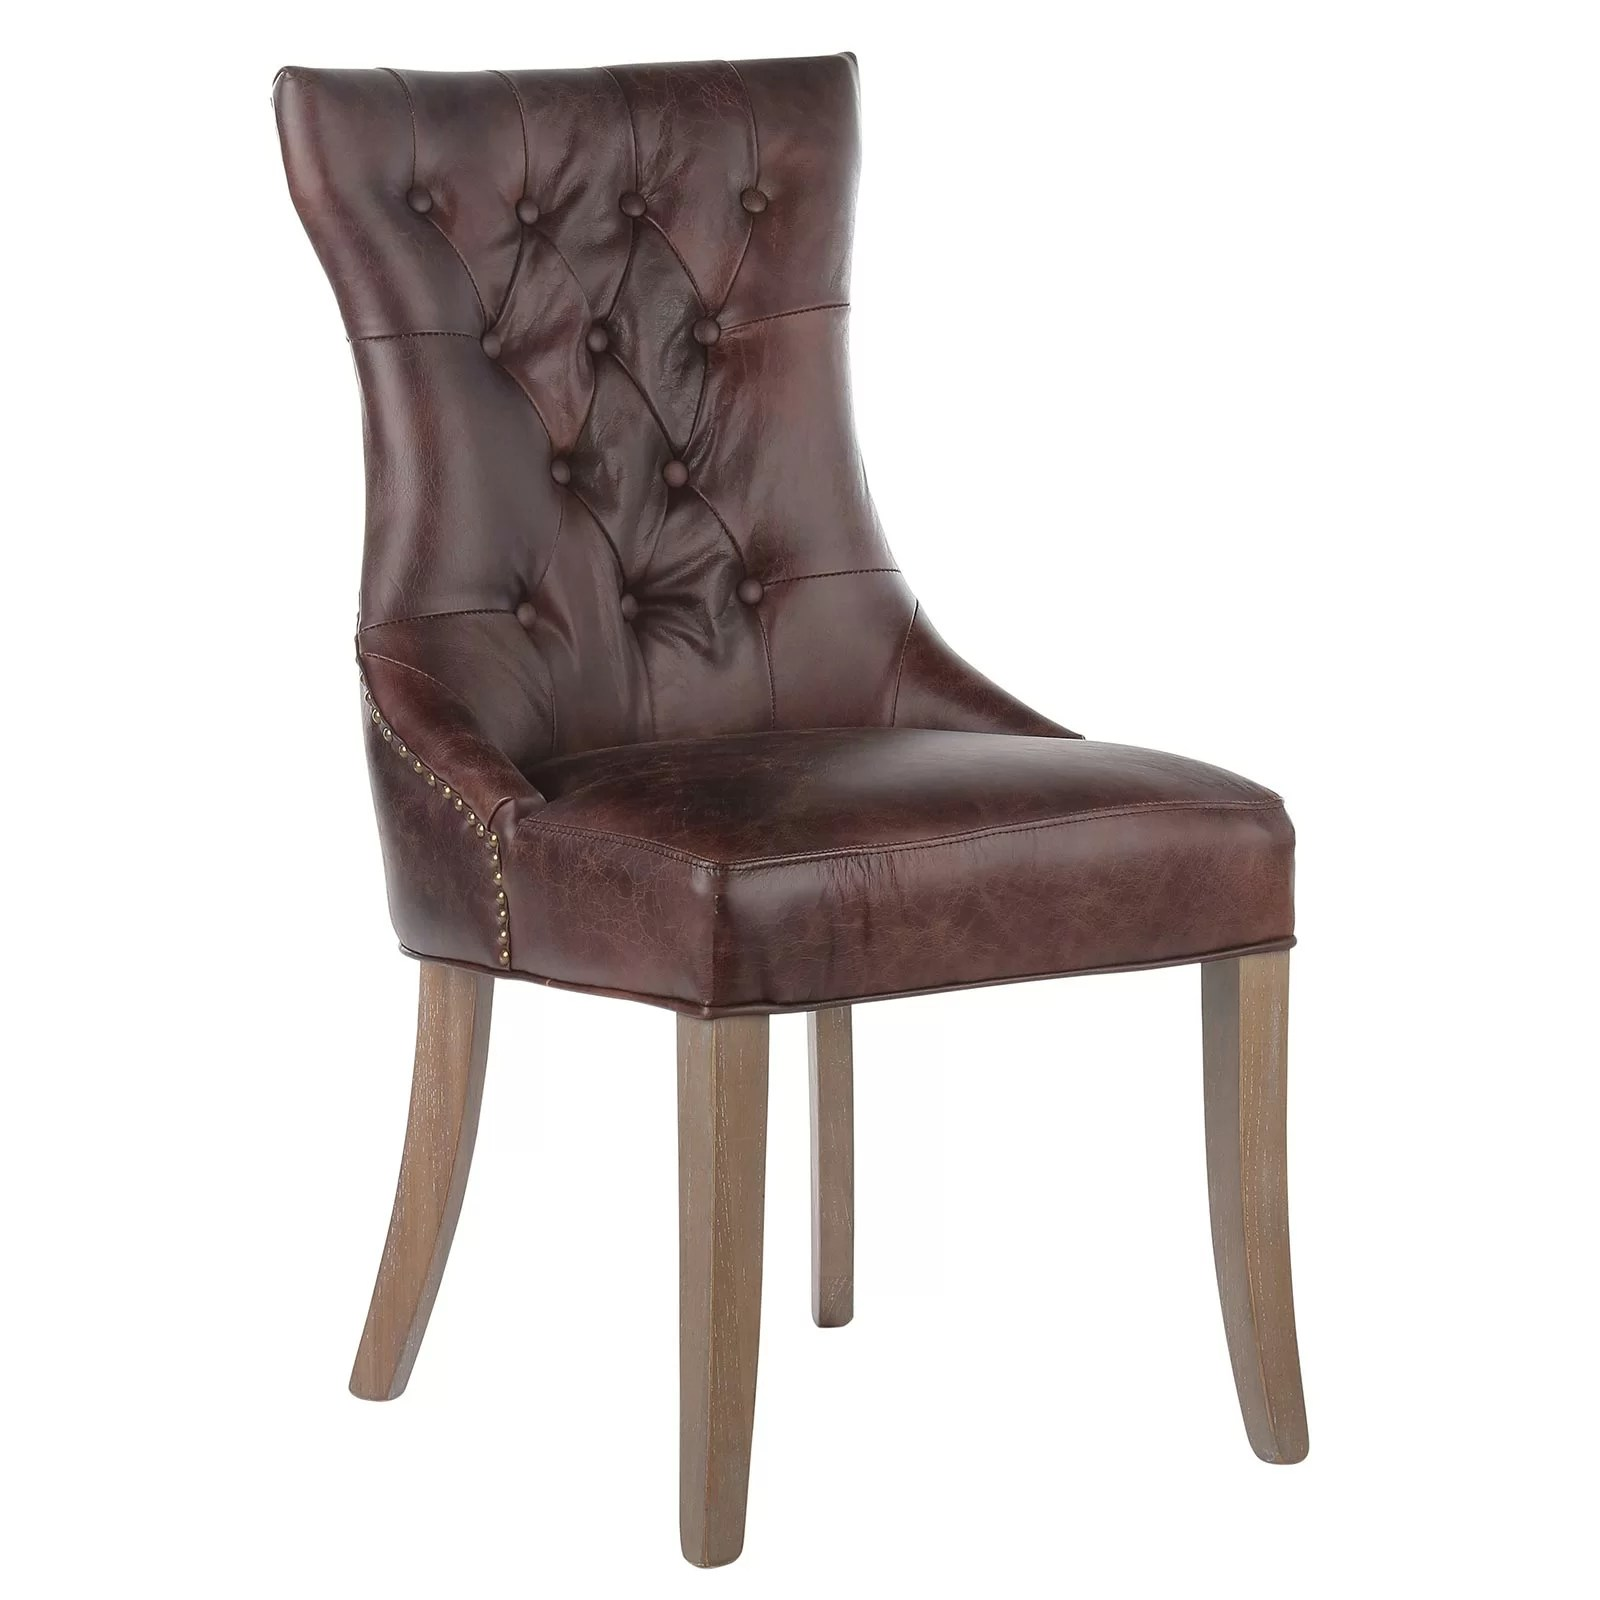 leather tufted dining chair wedding covers newmarket joseph allen mustang genuine upholstered